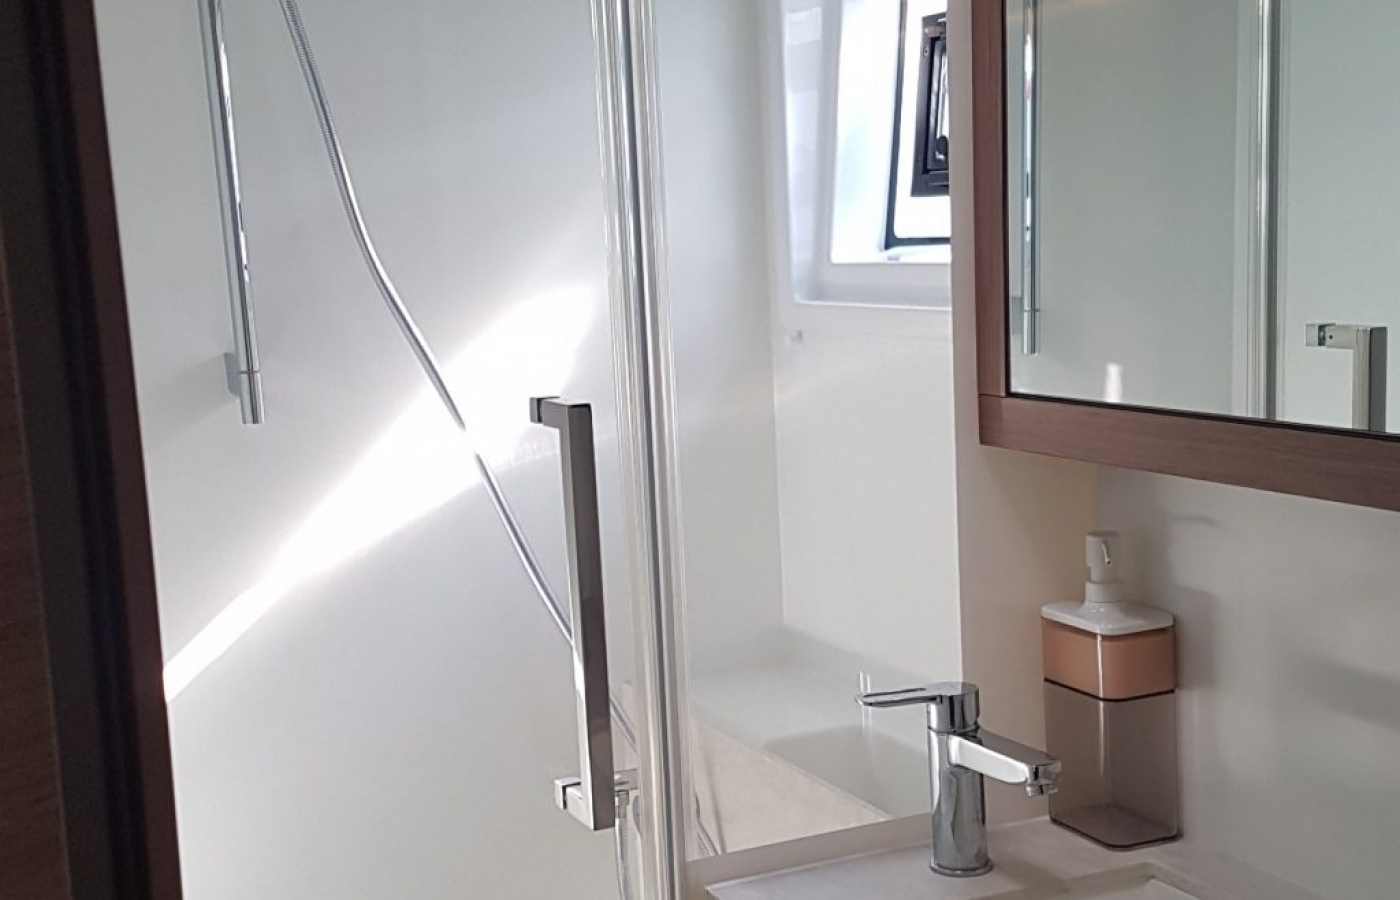 Corian finishes in the showers and bathroom top